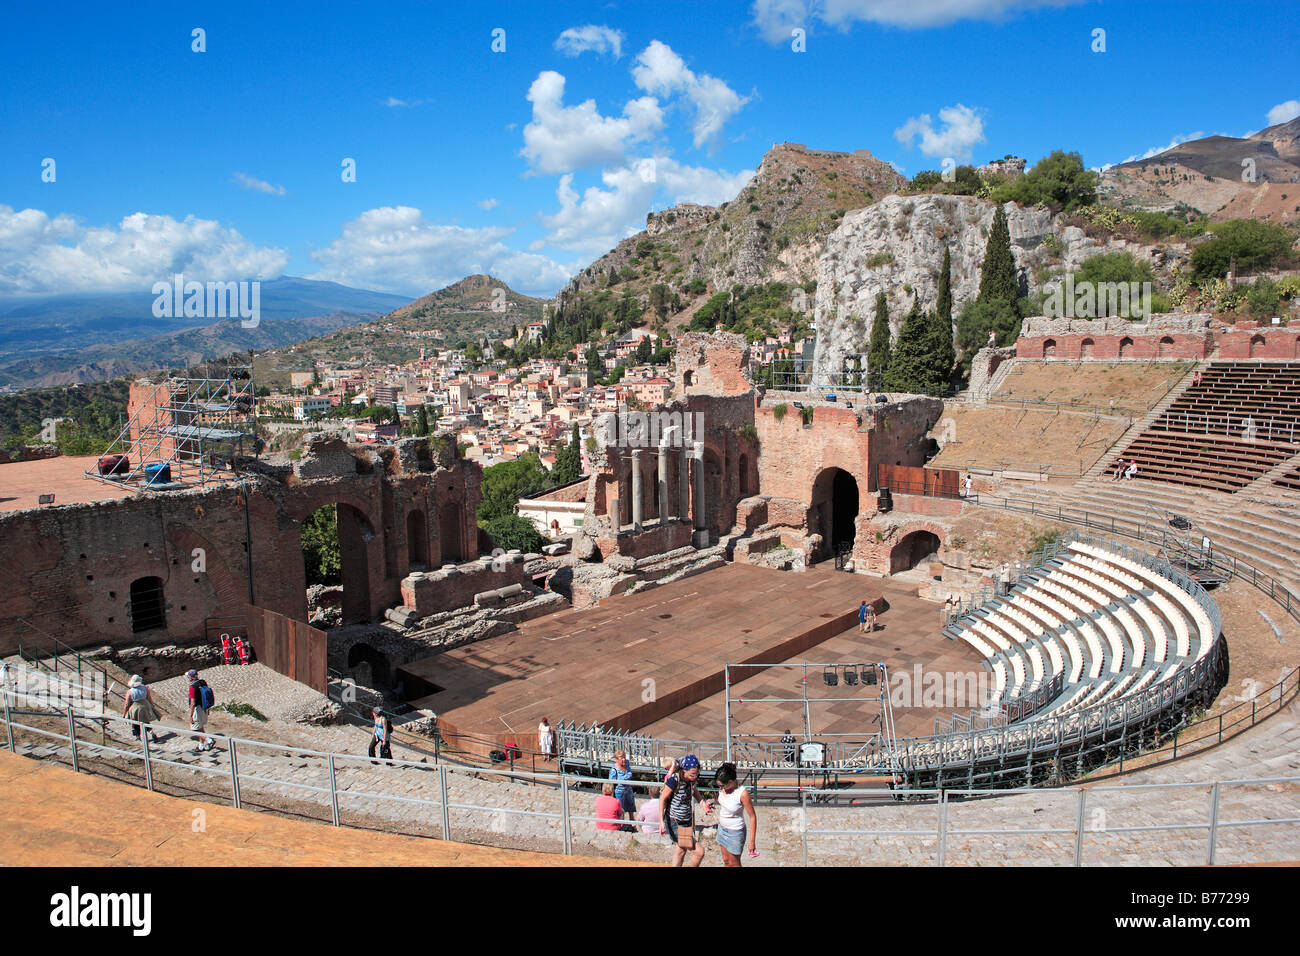 Greek Theatre and Mount Etna streaming cloud, Taormina, Sicily - Stock Image